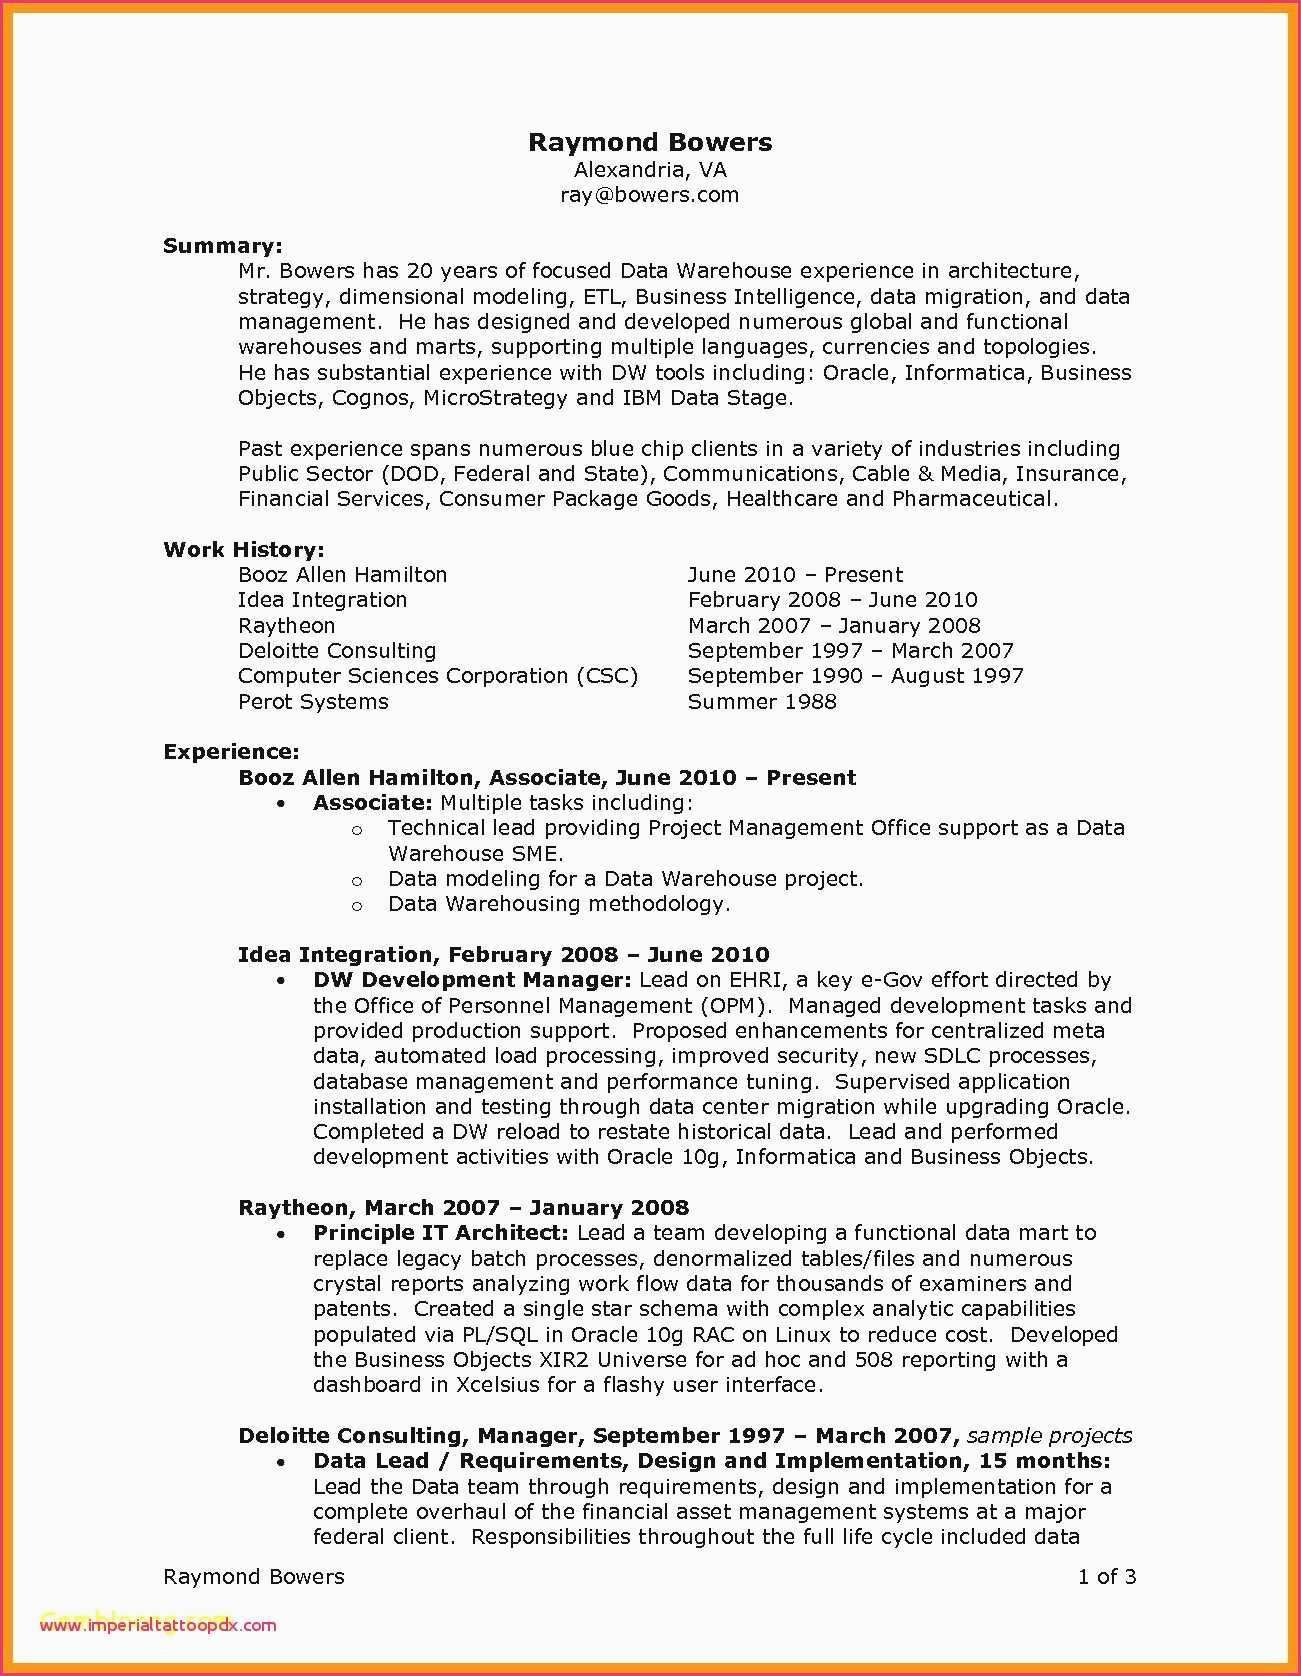 67 Cool Image Of tourism Management Resume Examples | Resume ...